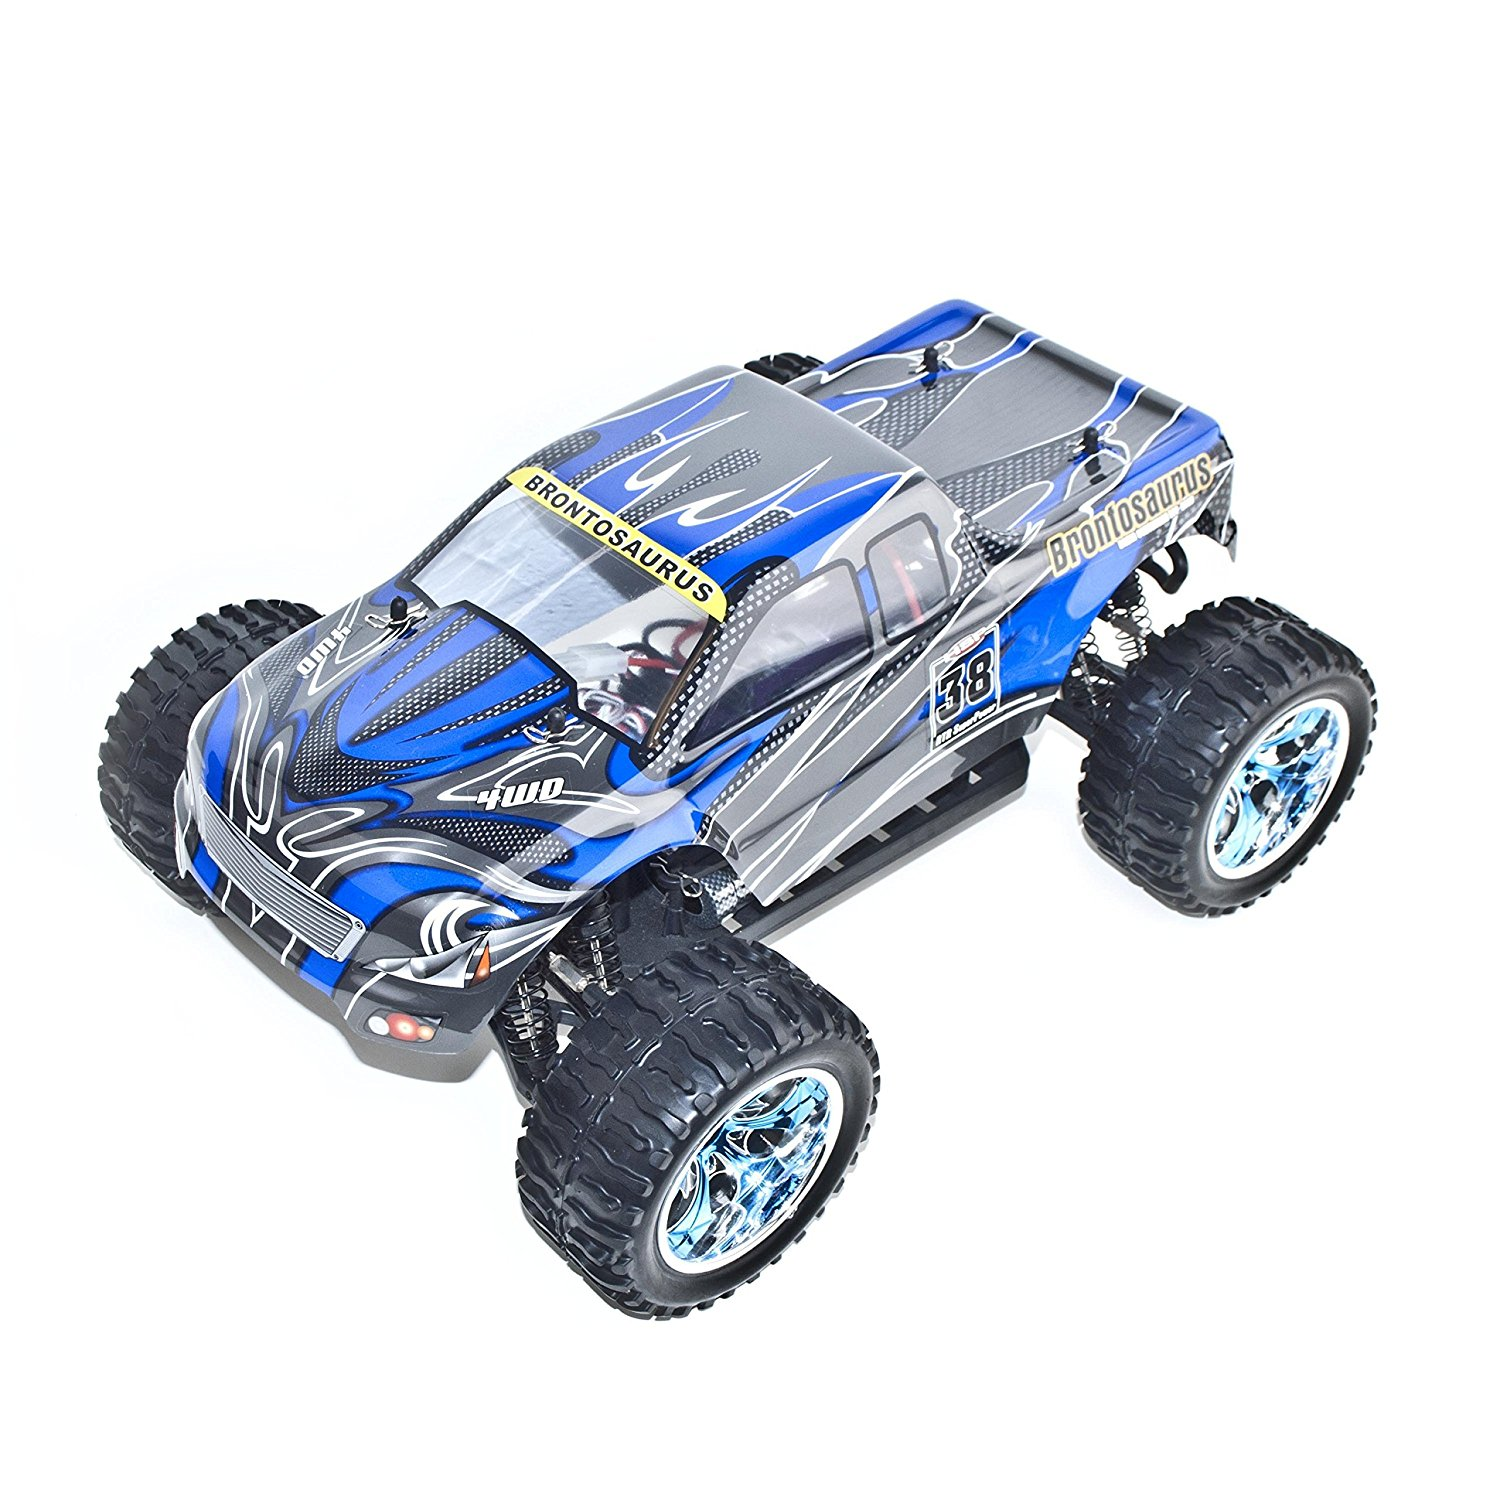 4WD 2 Ch Electric Powered High Speed Off Road Monster Truck, Blue 1/10 Scale